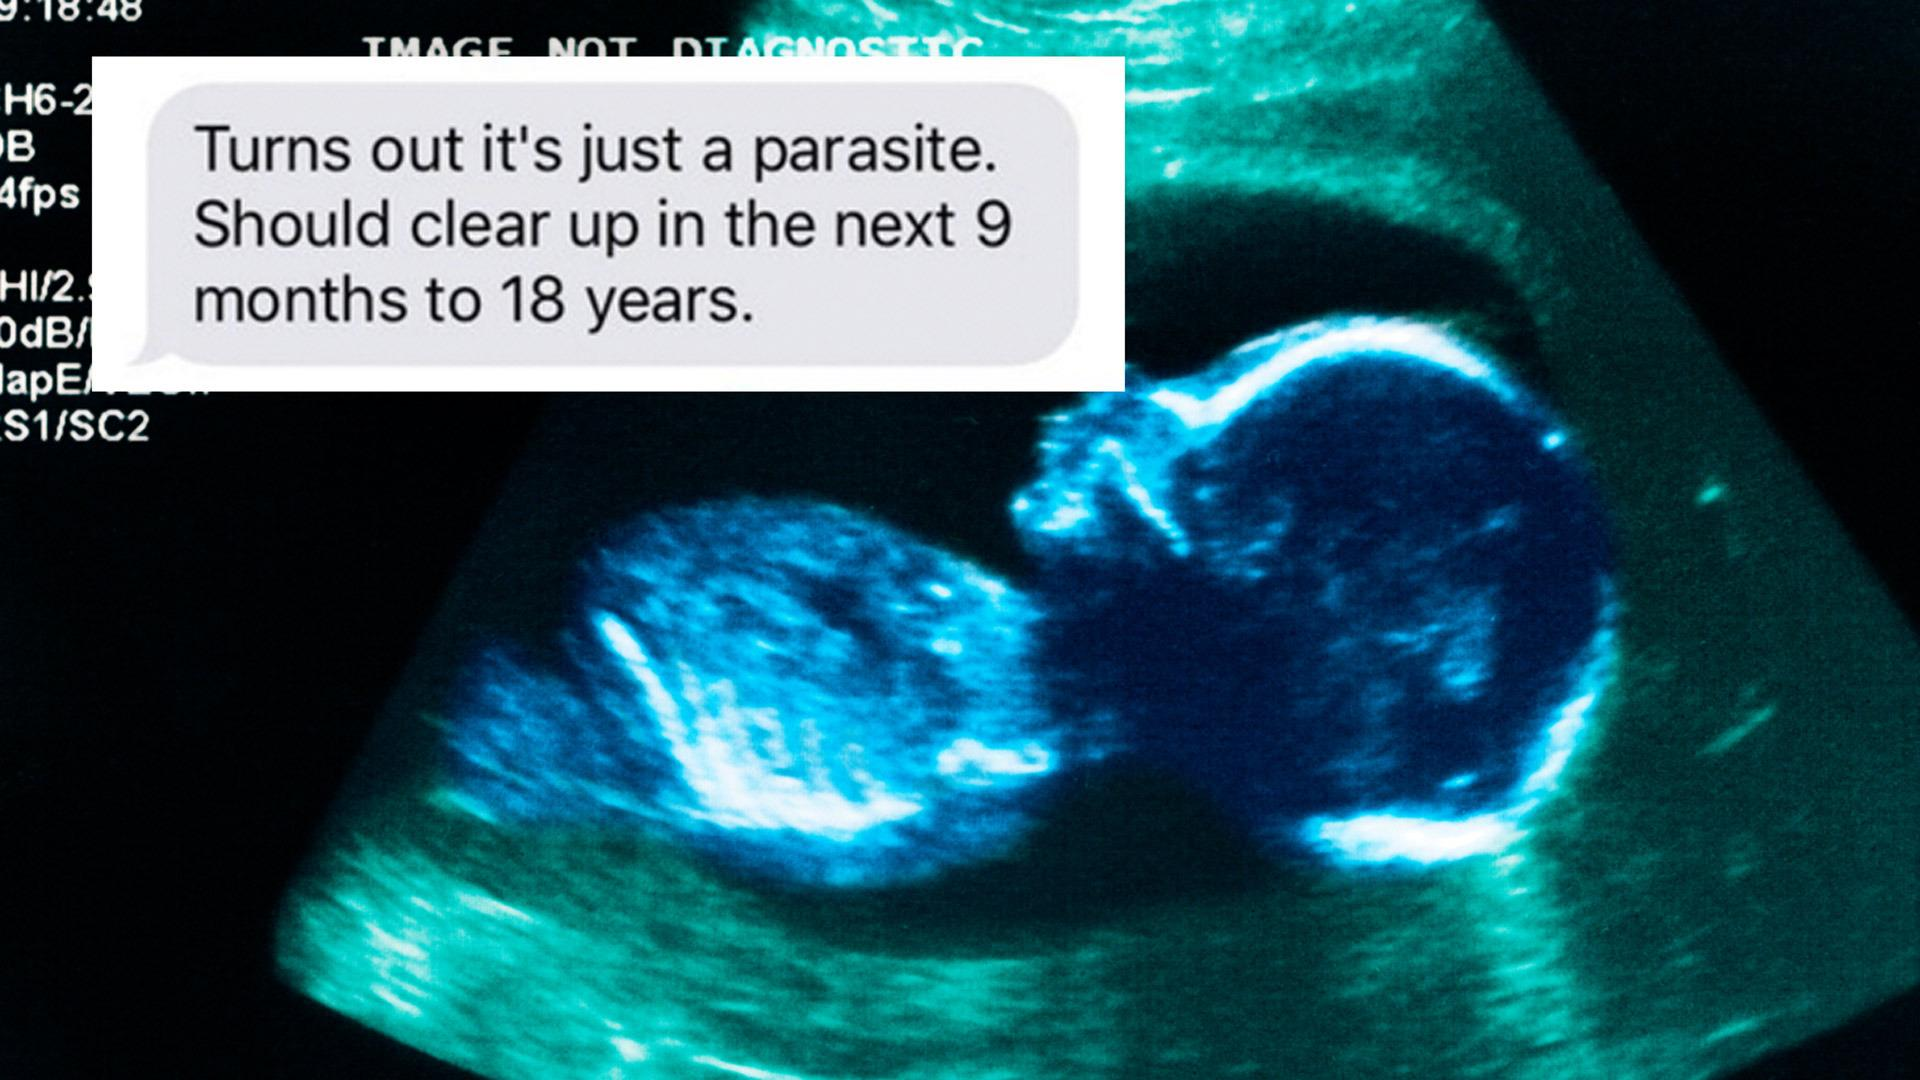 Man texts a friend about his wife's pregnancy in the best way